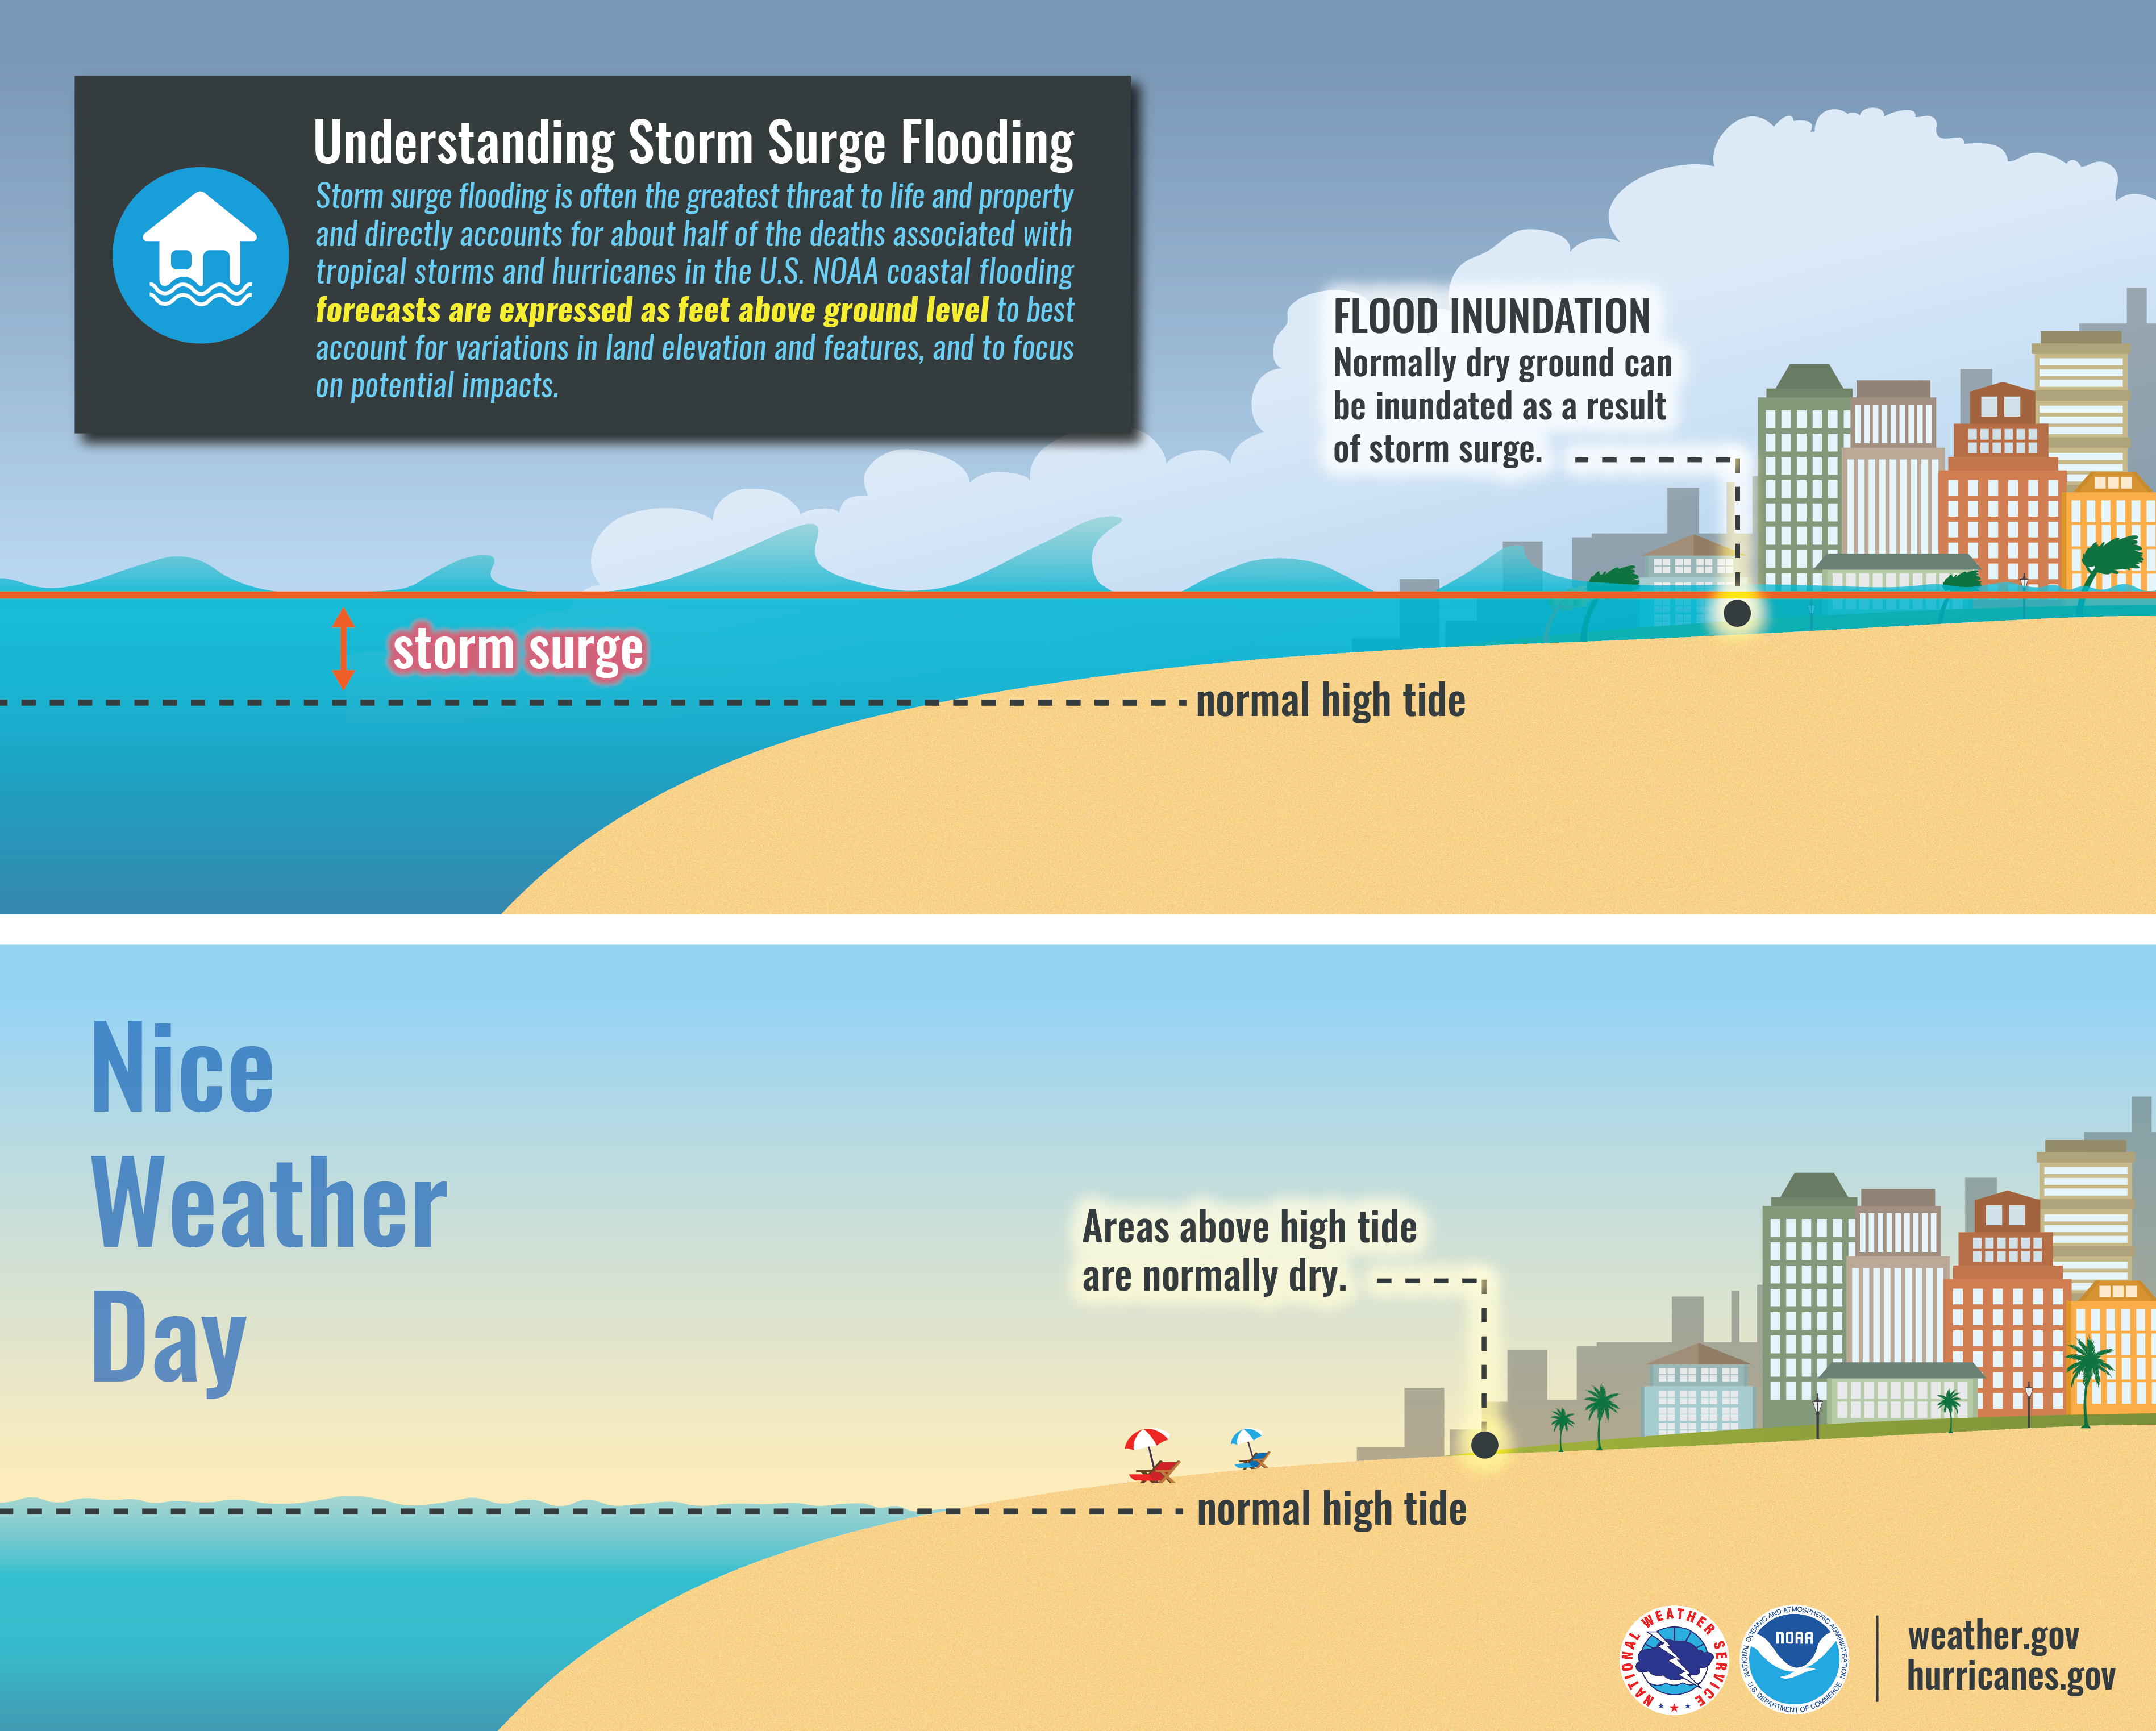 Understanding Storm Surge Flooding: Storm surge flooding is often the greatest threat to life and property and directly accounts for about half of the deaths associated with tropical storms and hurricanes in the U.S. NOAA coastal flooding forecasts are expressed as feet above ground level to best account for variations in land elevation and features, and to focus on potential impacts.